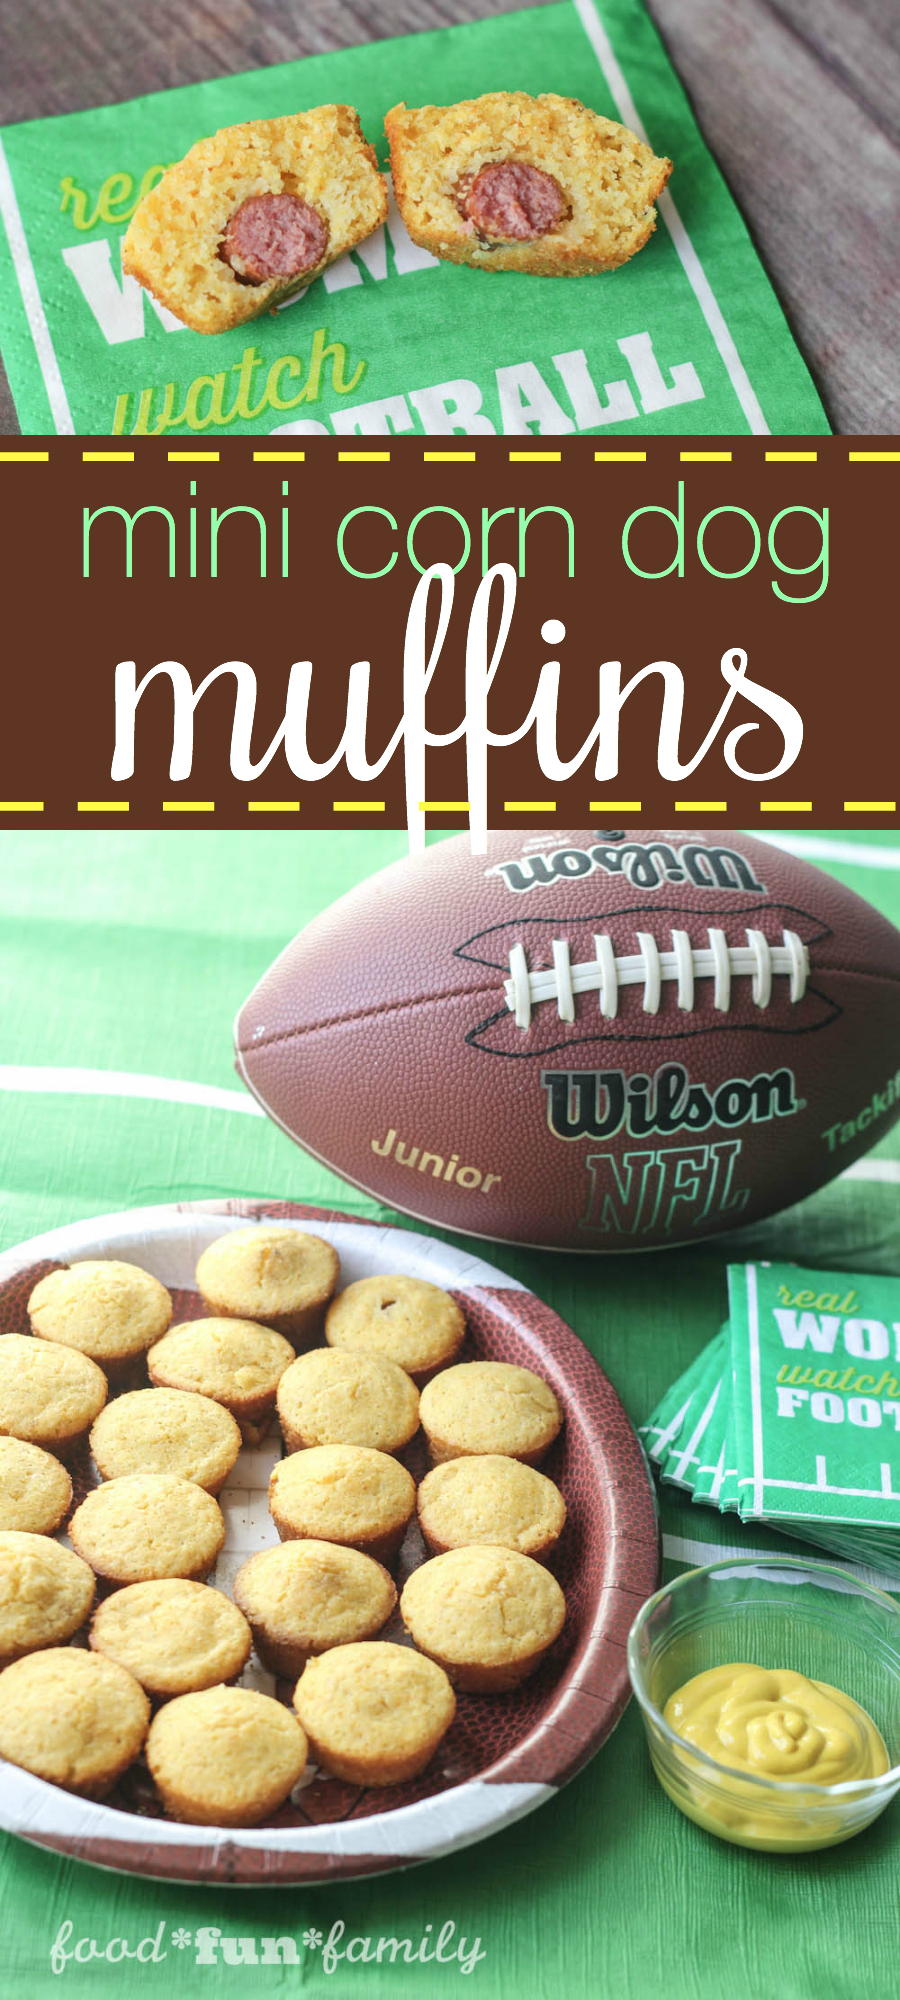 Mini corn dog muffins recipe - perfect party food appetizer or dinner ...